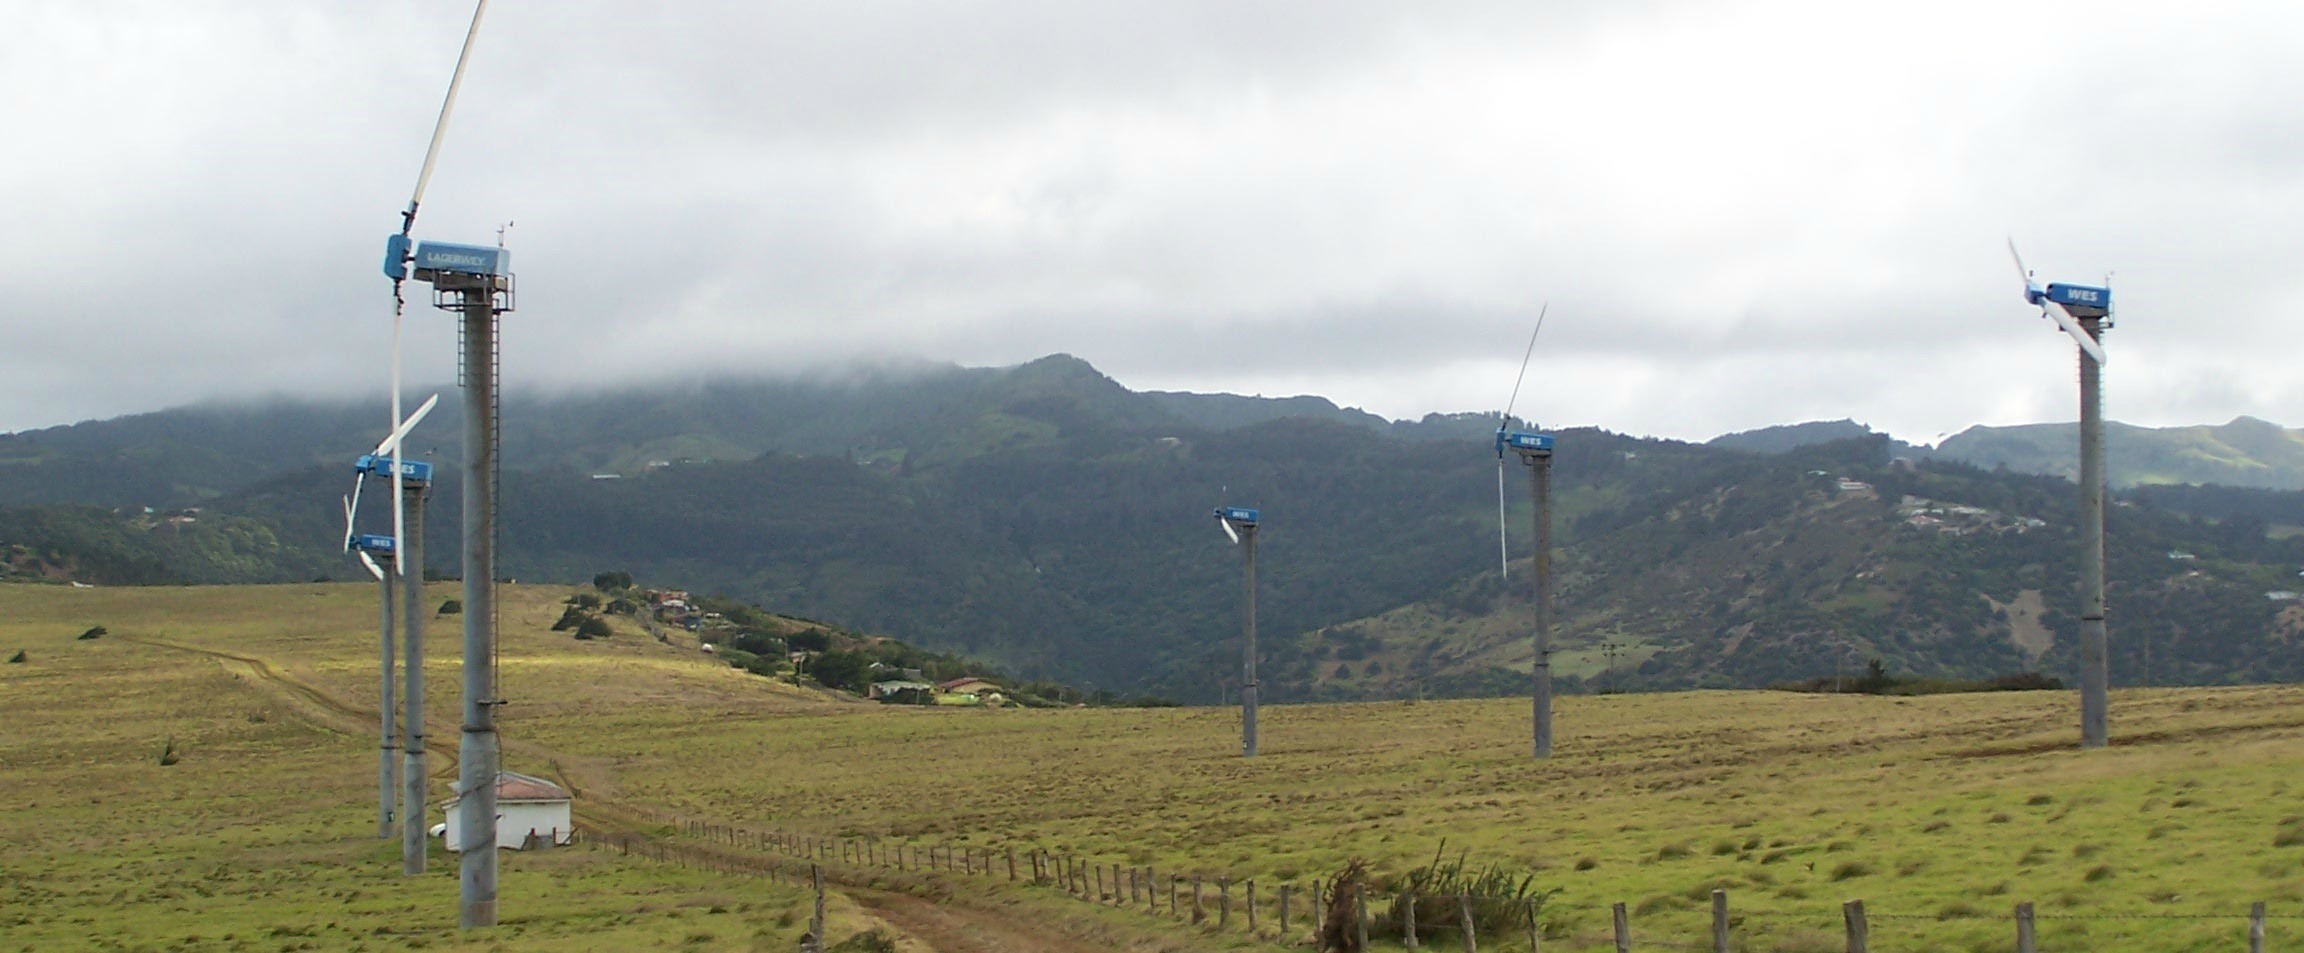 © Wind energy solutions - St.Helena